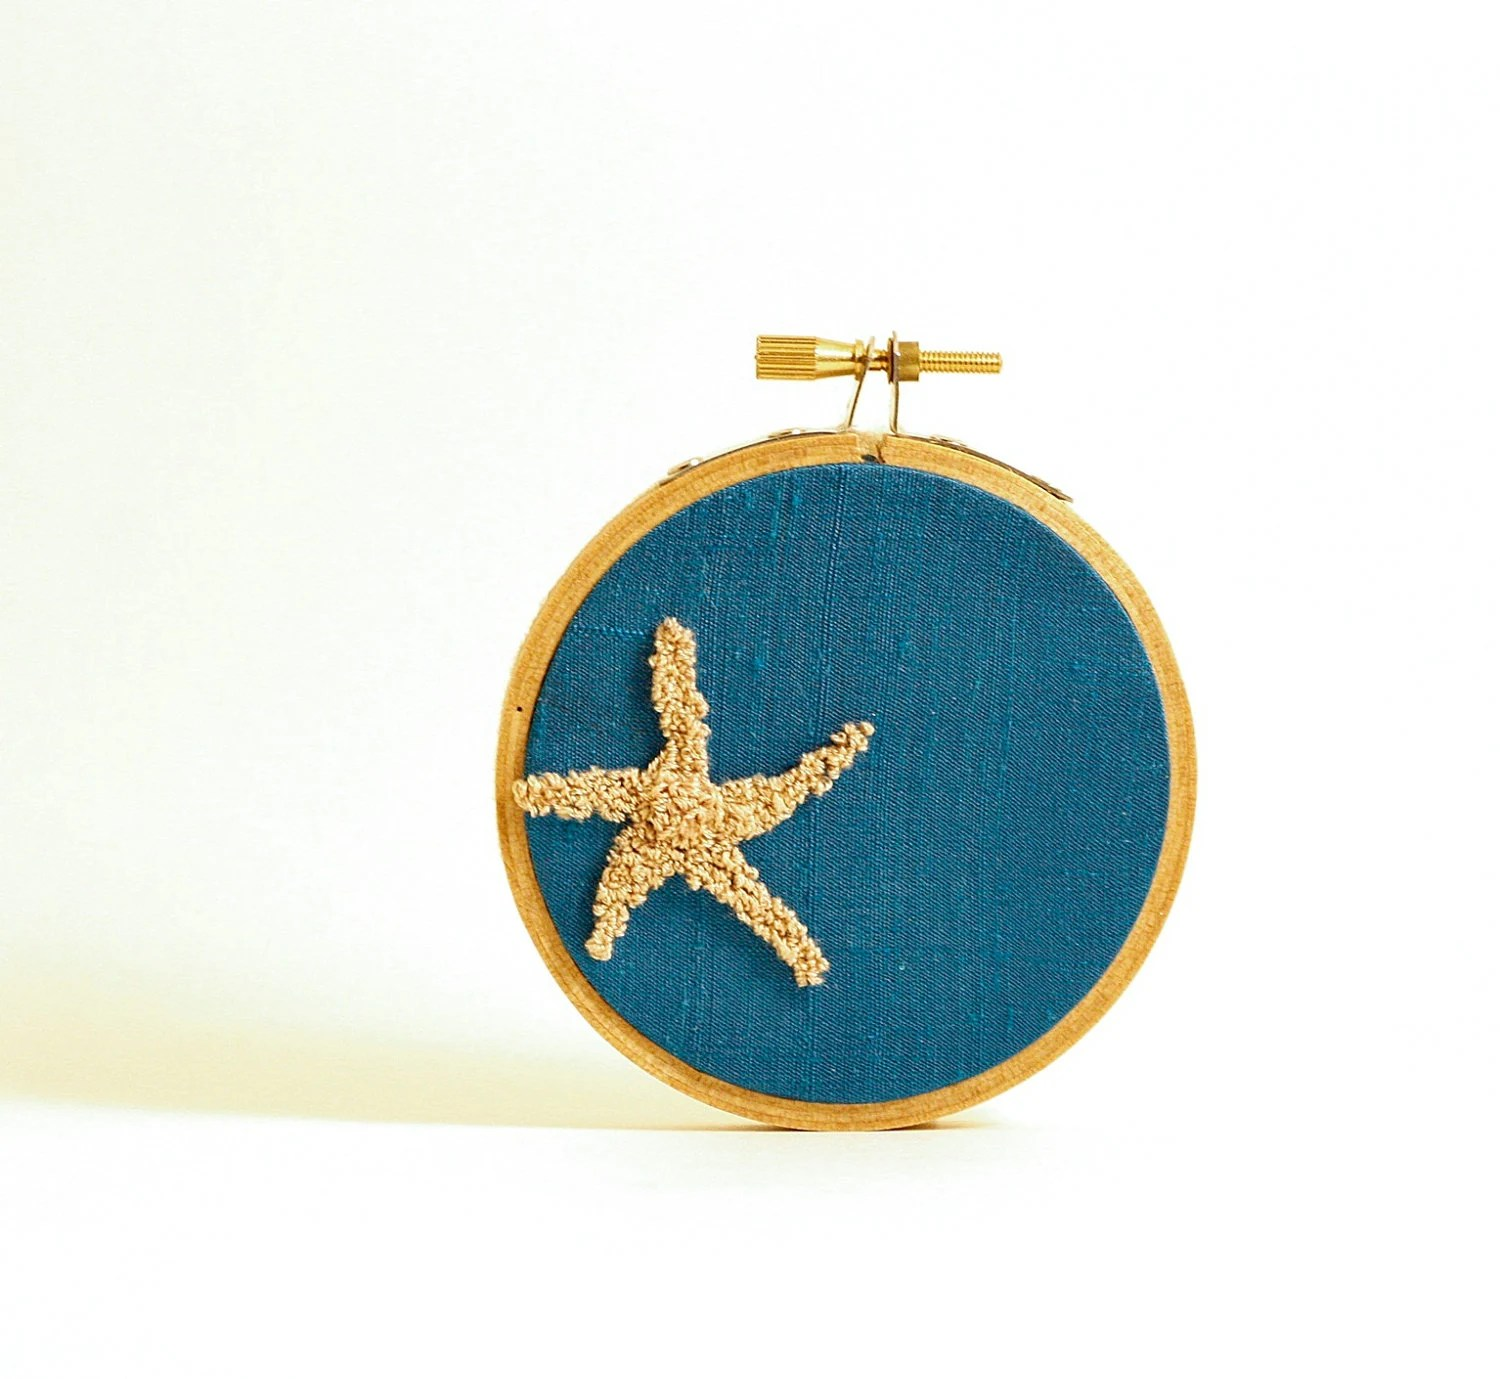 Starfish Punchneedle Embroidery Hoop Art. Light Blue Silk. Nautical Inspired Cottage Decor, Beach House Decor.  3 Inch Size - HarpandThistle